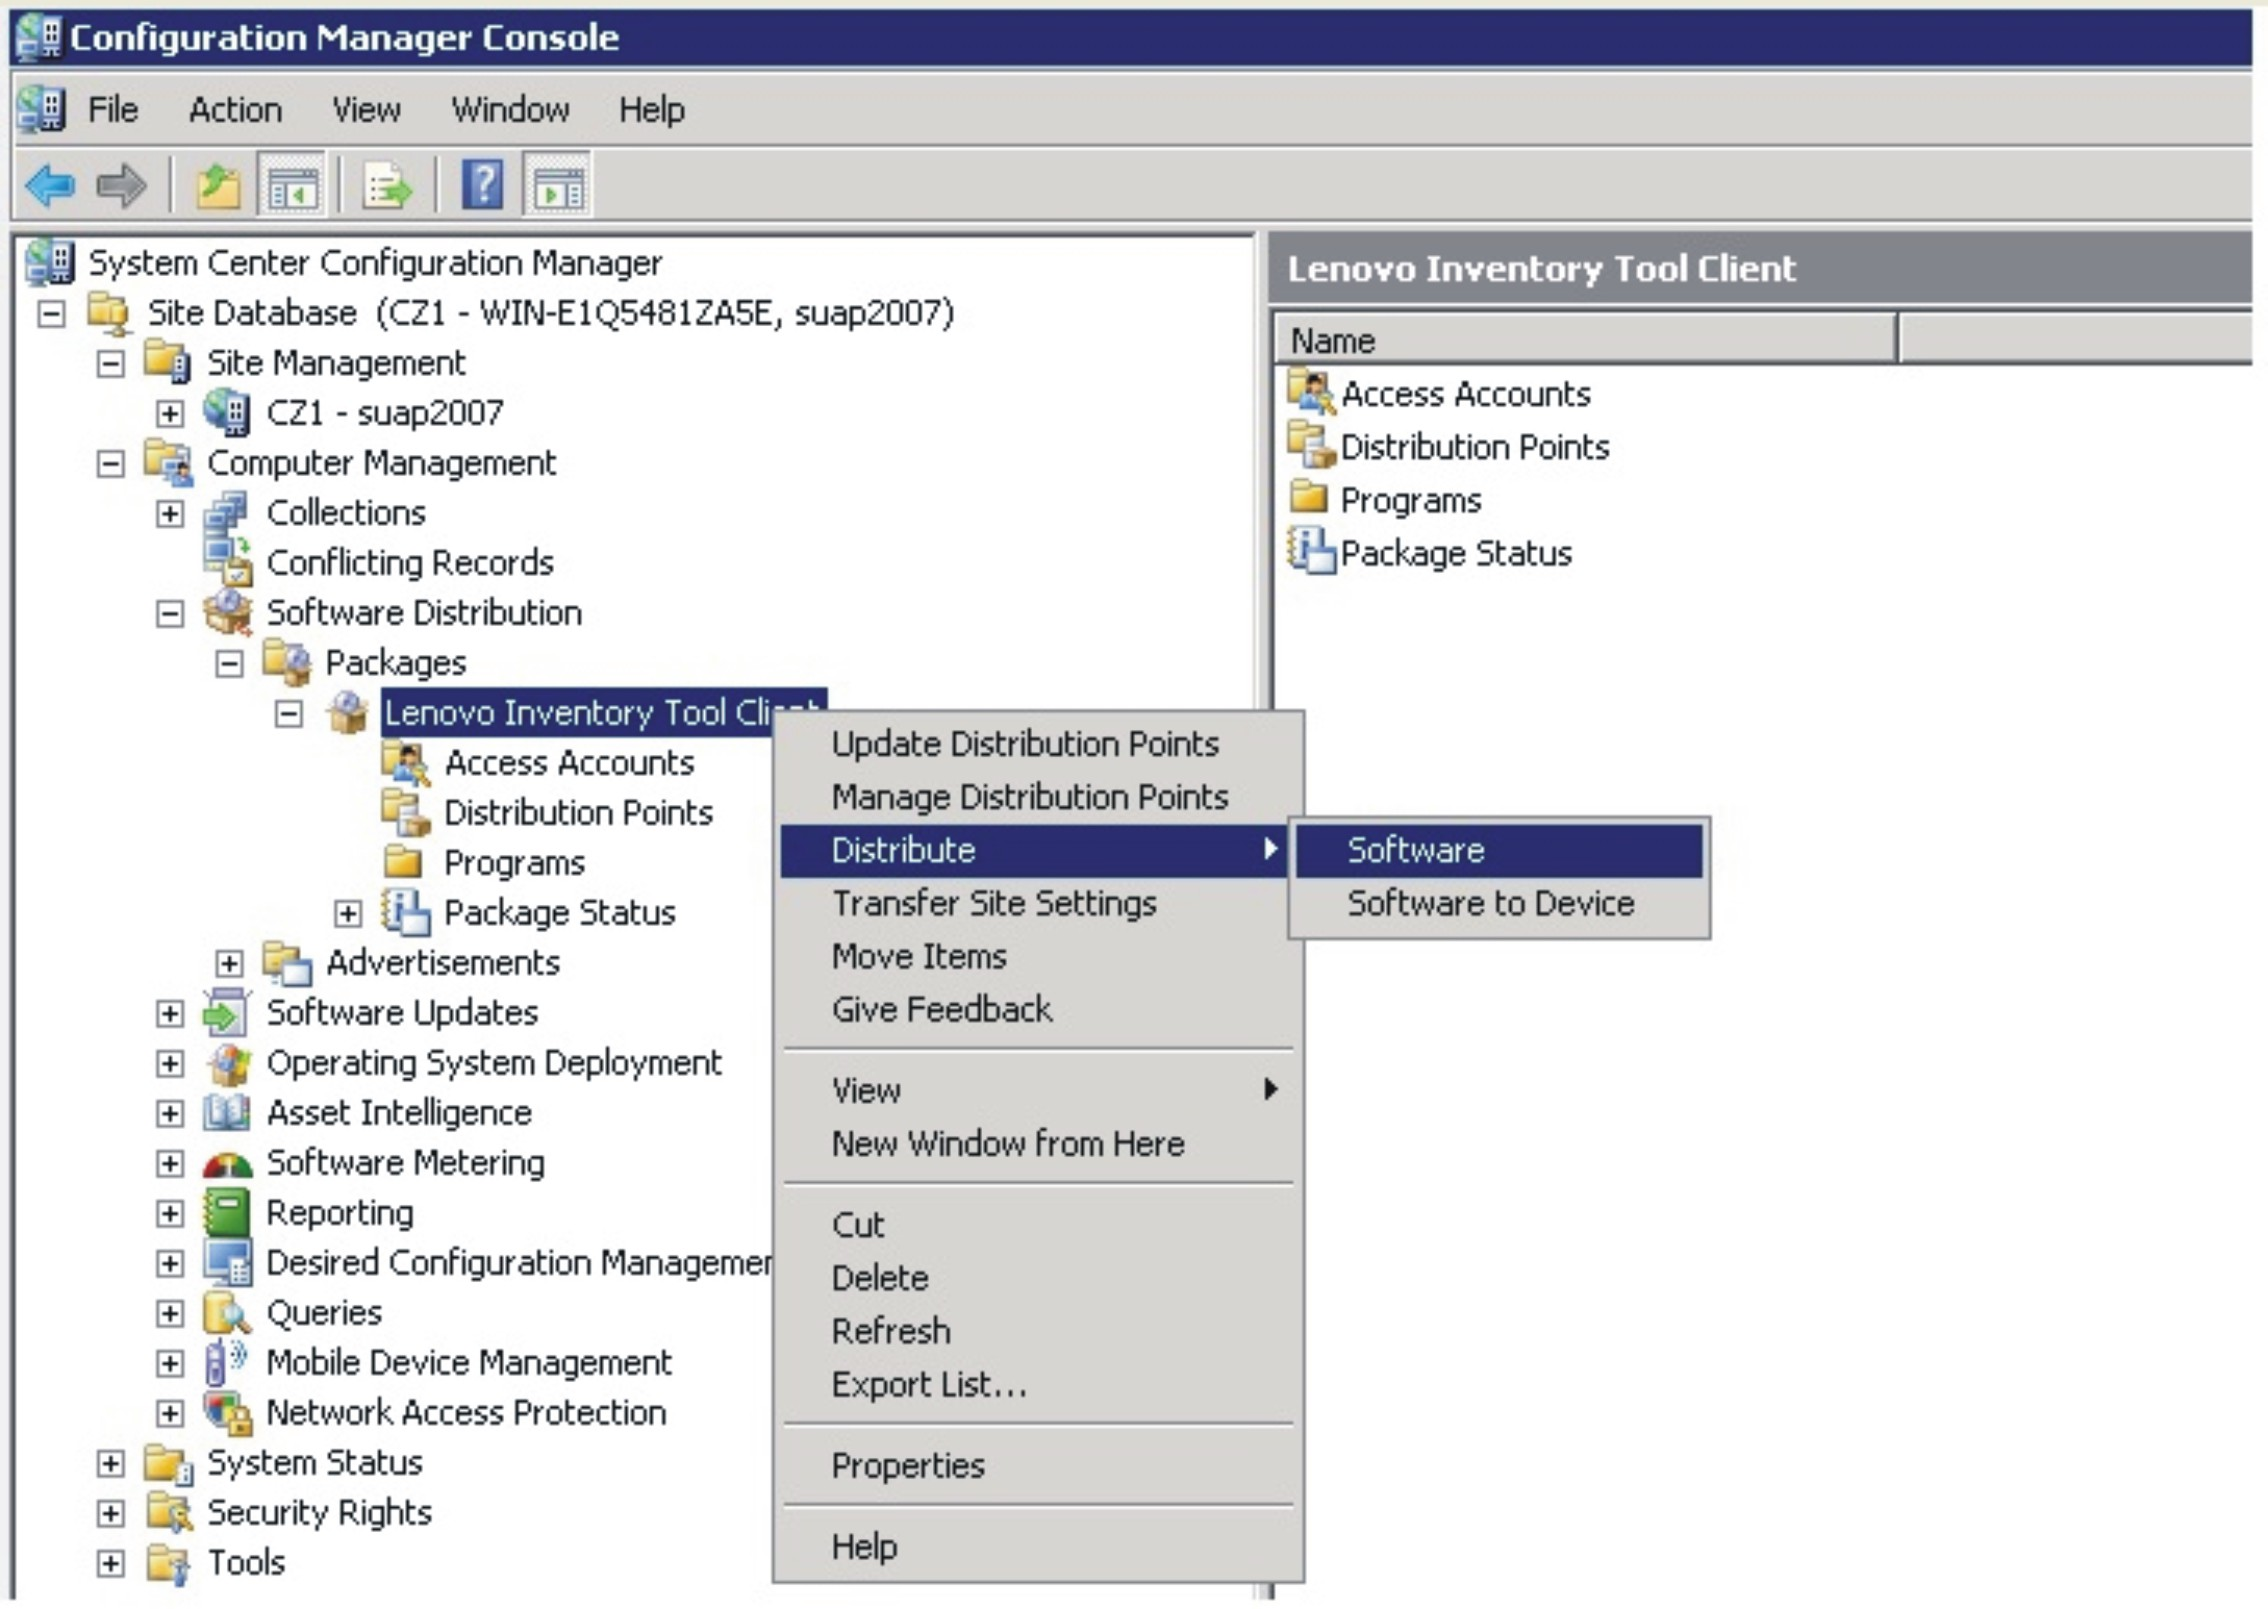 Deploying the Lenovo Inventory Tool client package - Lenovo